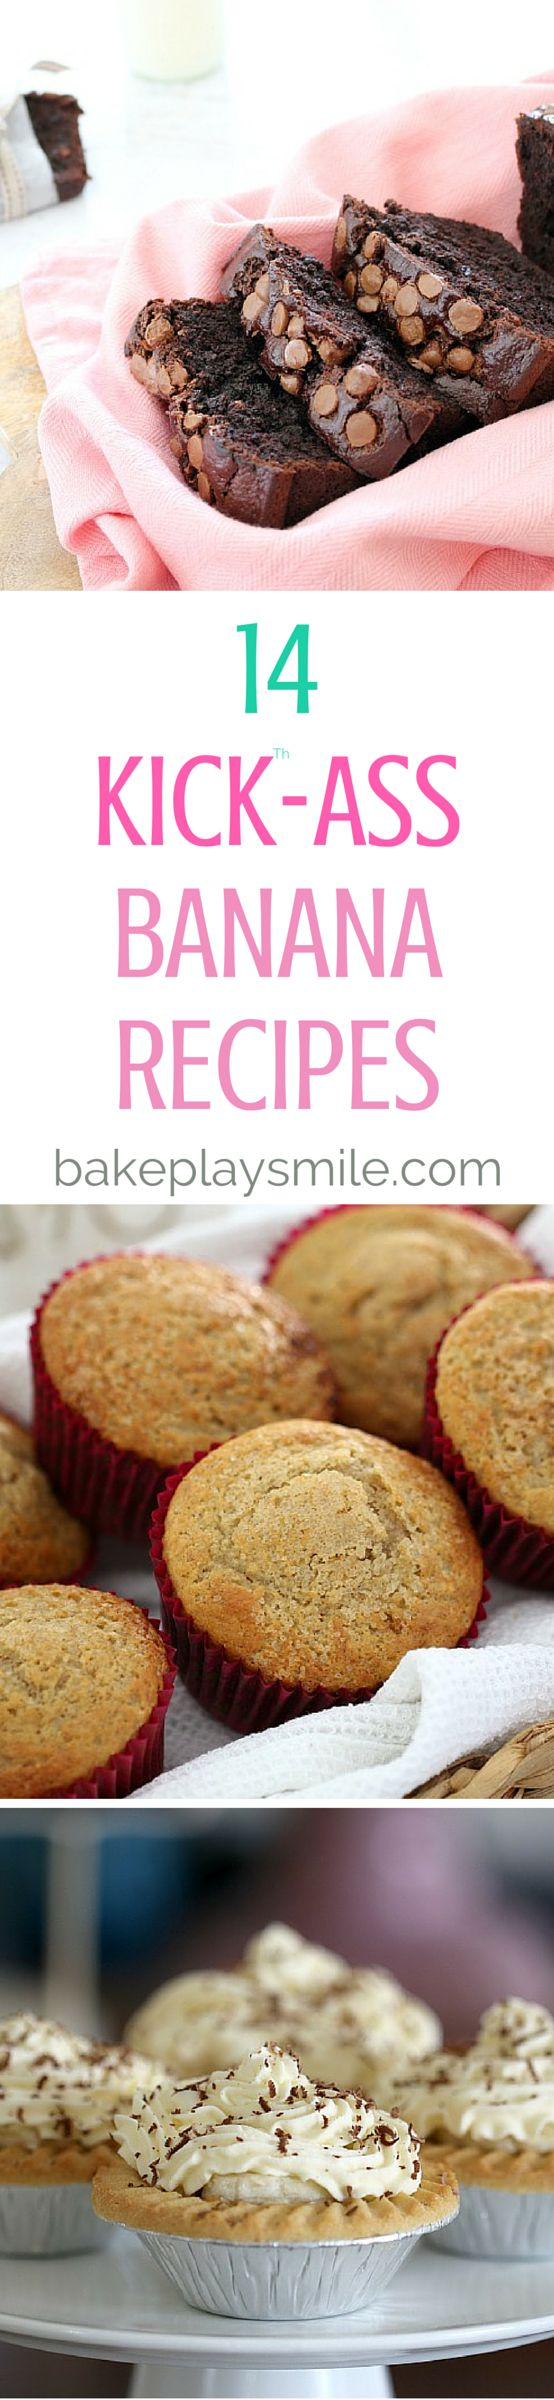 Recipes For Using Up Ripe Bananas! 14 of the BEST banana recipes... from cakes to muffins, desserts to loaves, smoothies to cupcakes! #banana #recipes #baking #easy